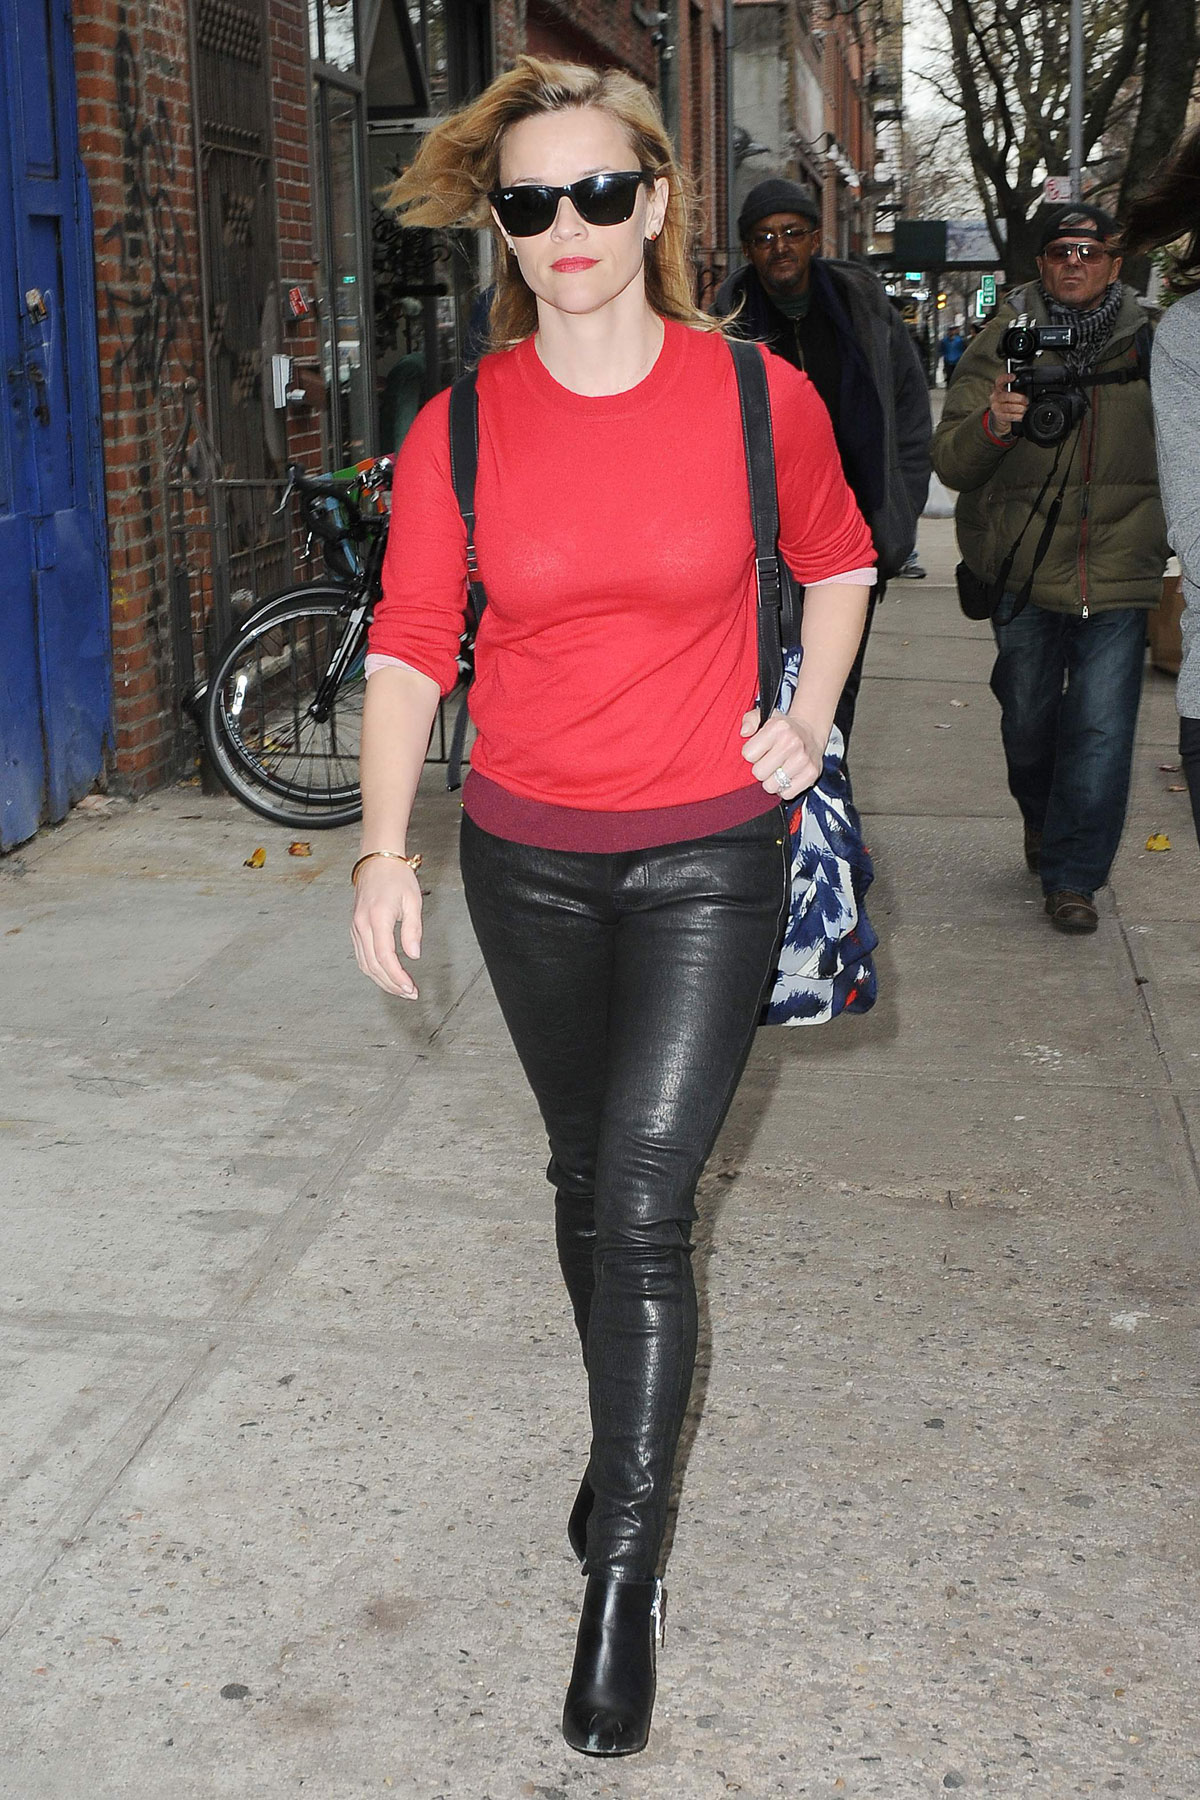 Reese Witherspoon is seen in New York City